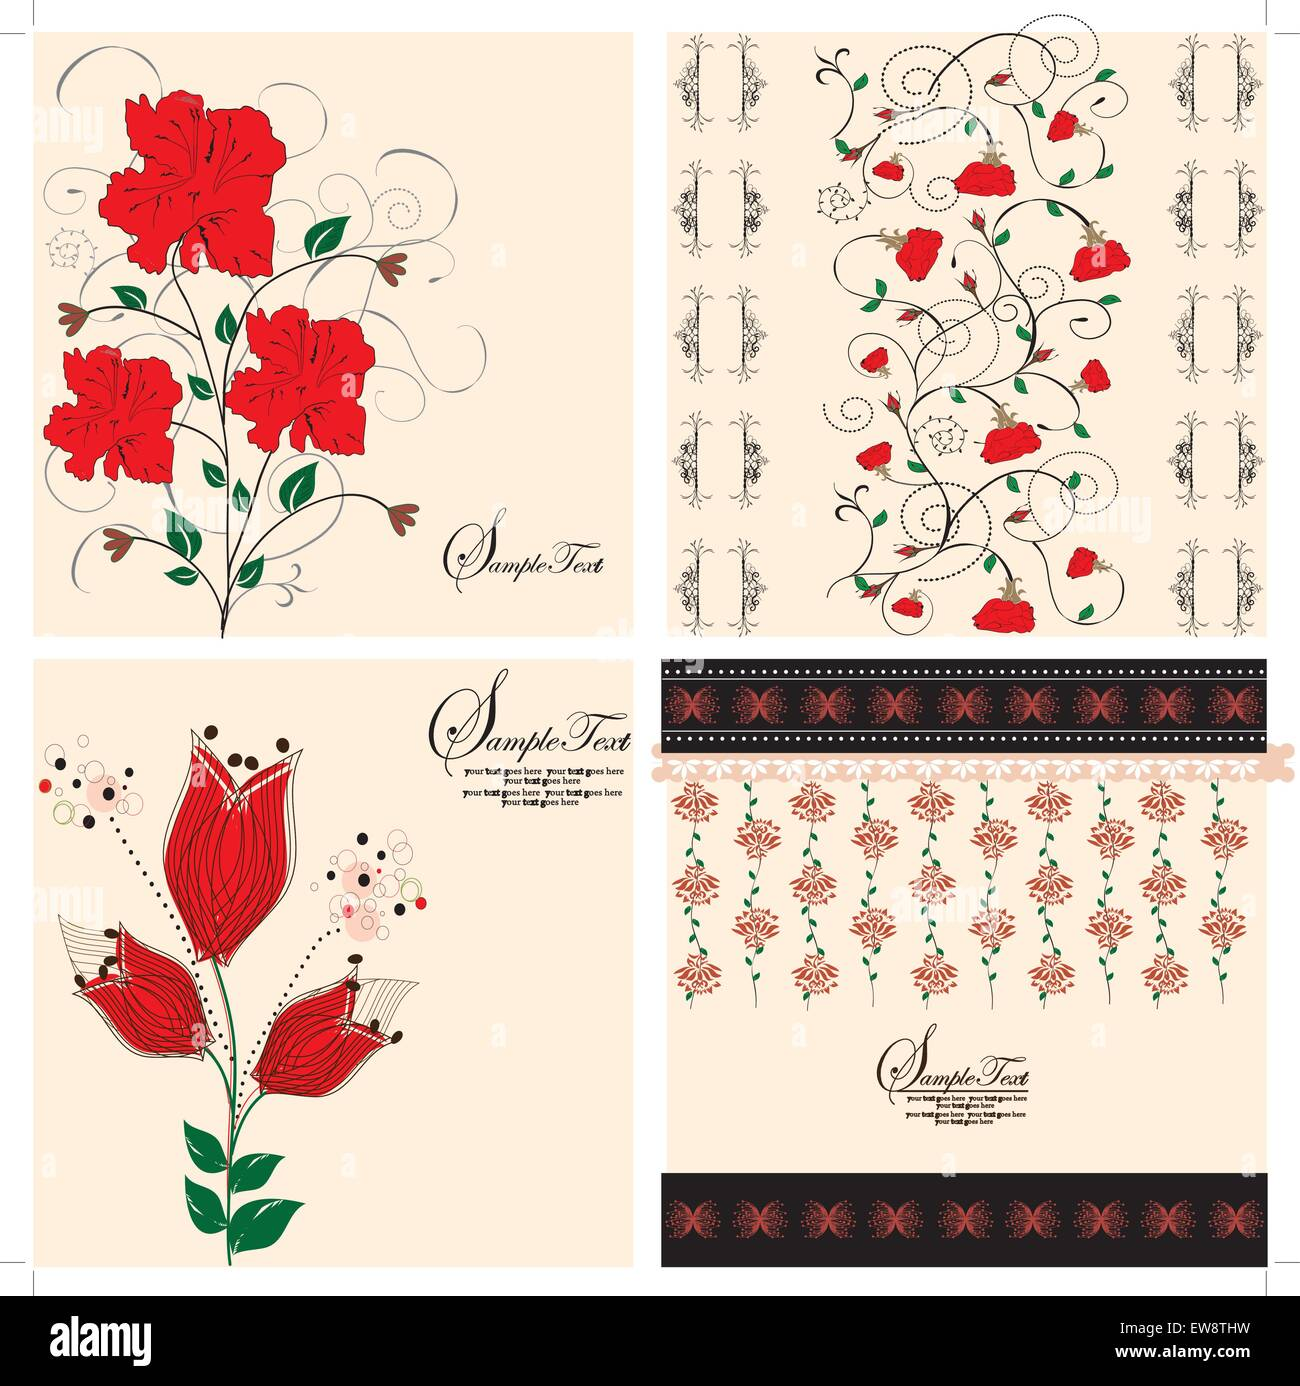 Set of four (4) vintage invitation cards with ornate elegant retro abstract floral designs, red flowers on tan. Stock Vector